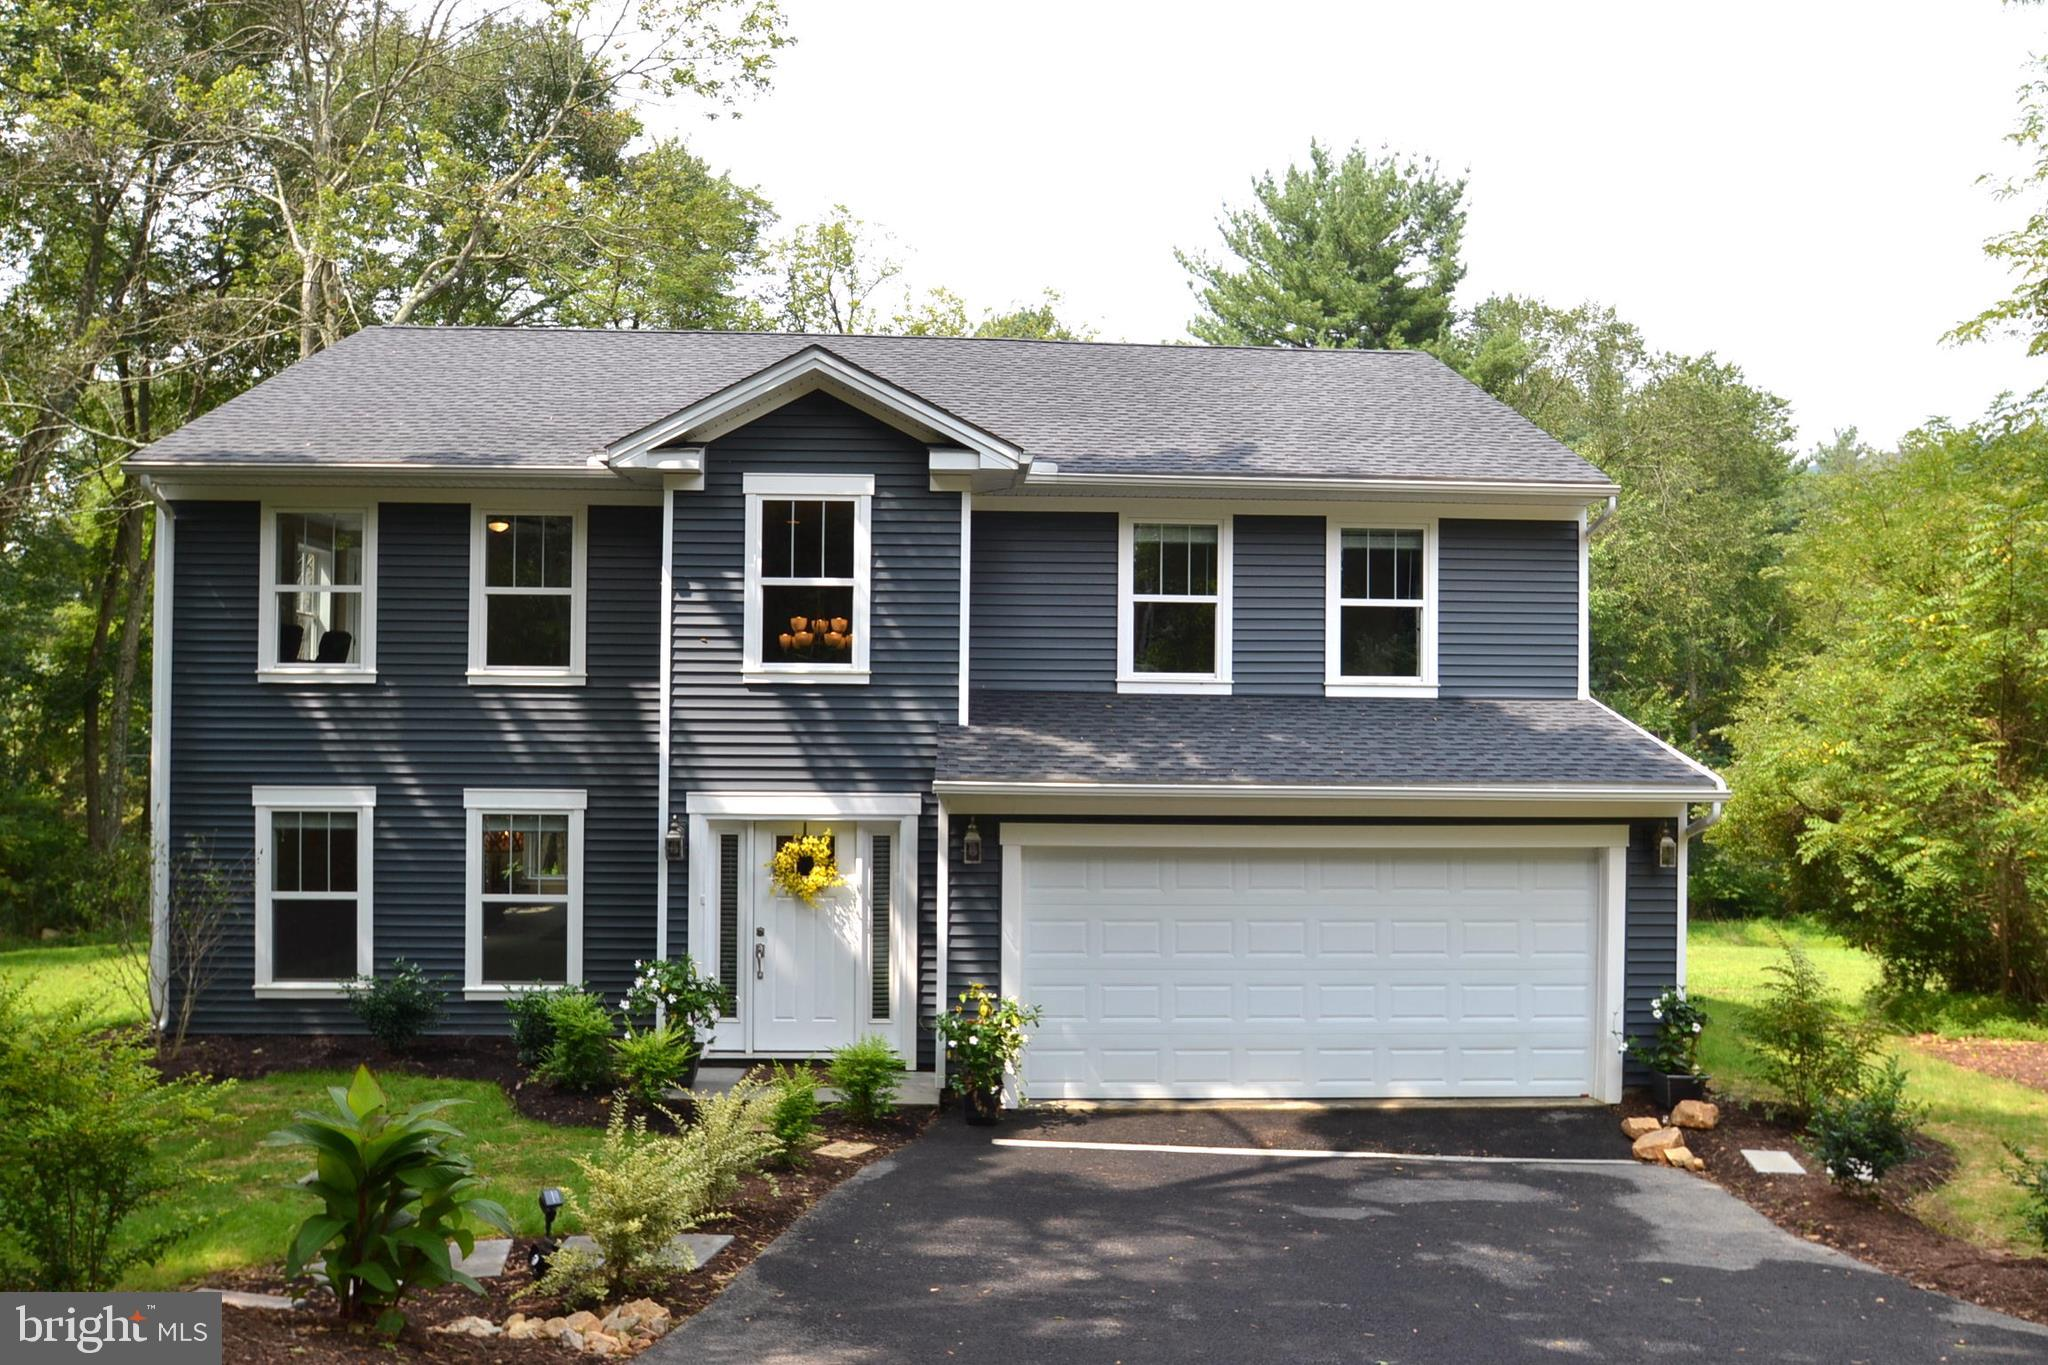 450 S BALTIMORE AVENUE S, MOUNT HOLLY SPRINGS, PA 17065